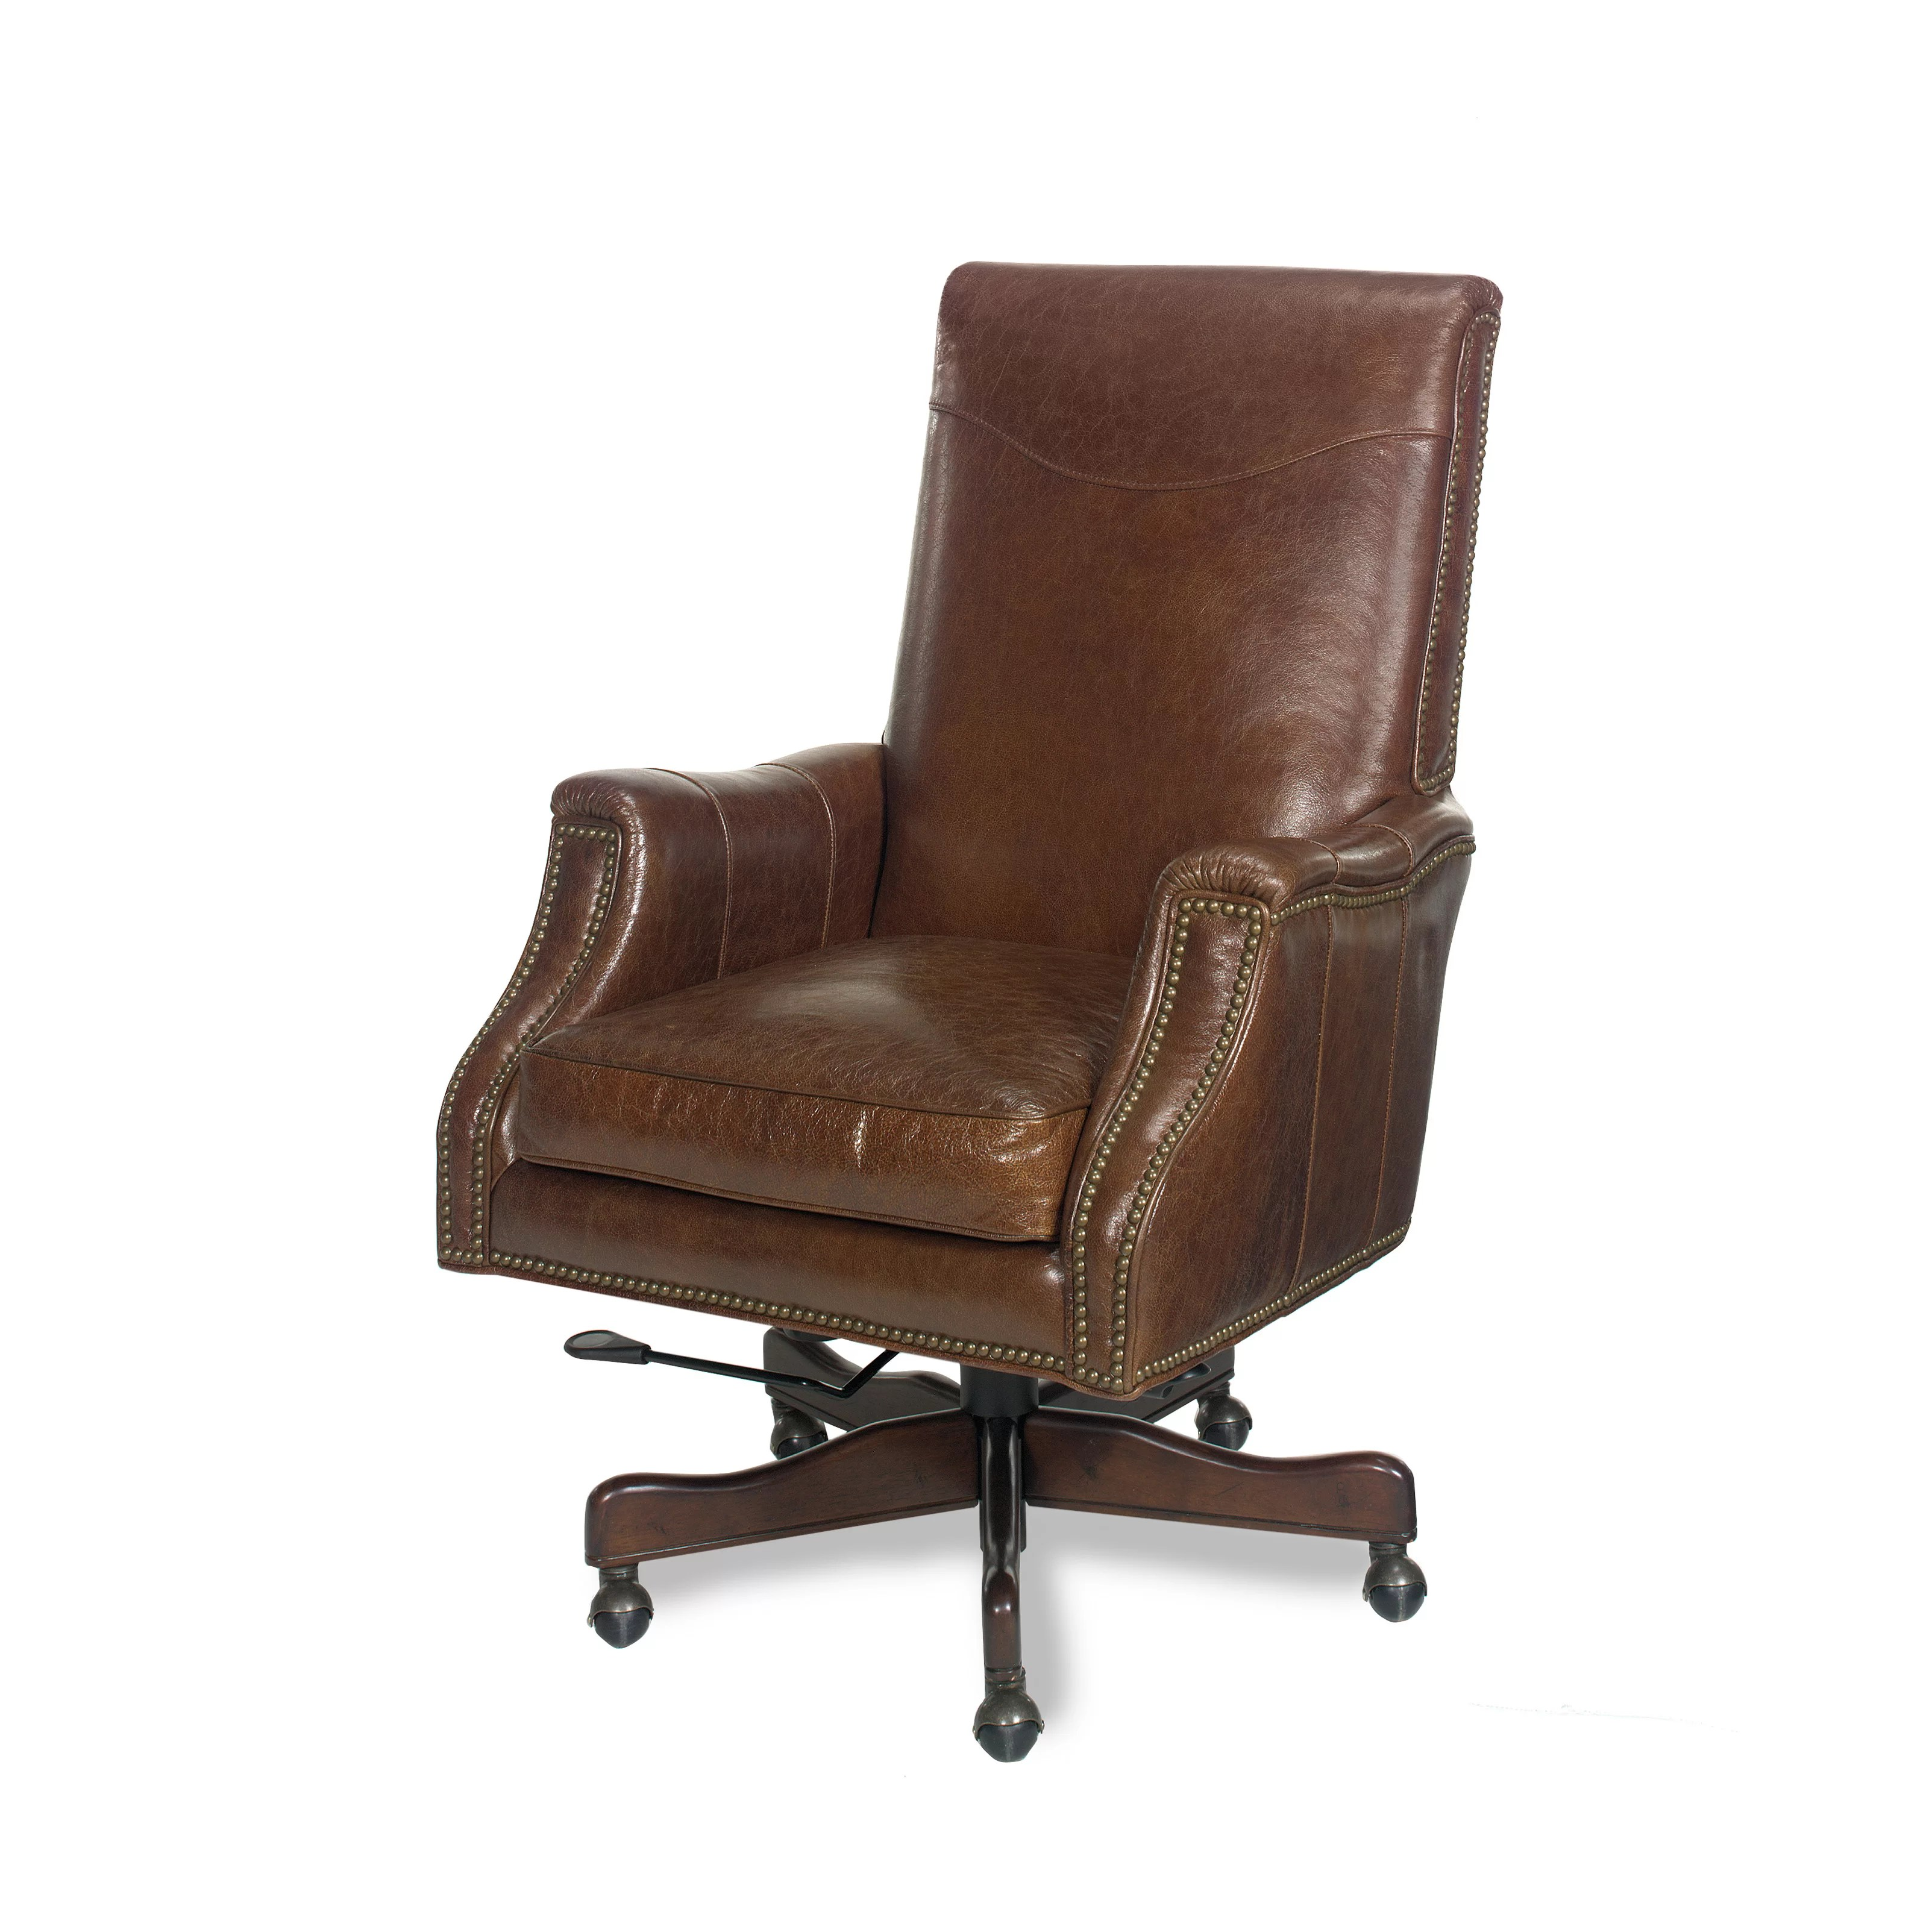 wayfair swivel chair covers venues hooker furniture leather and reviews